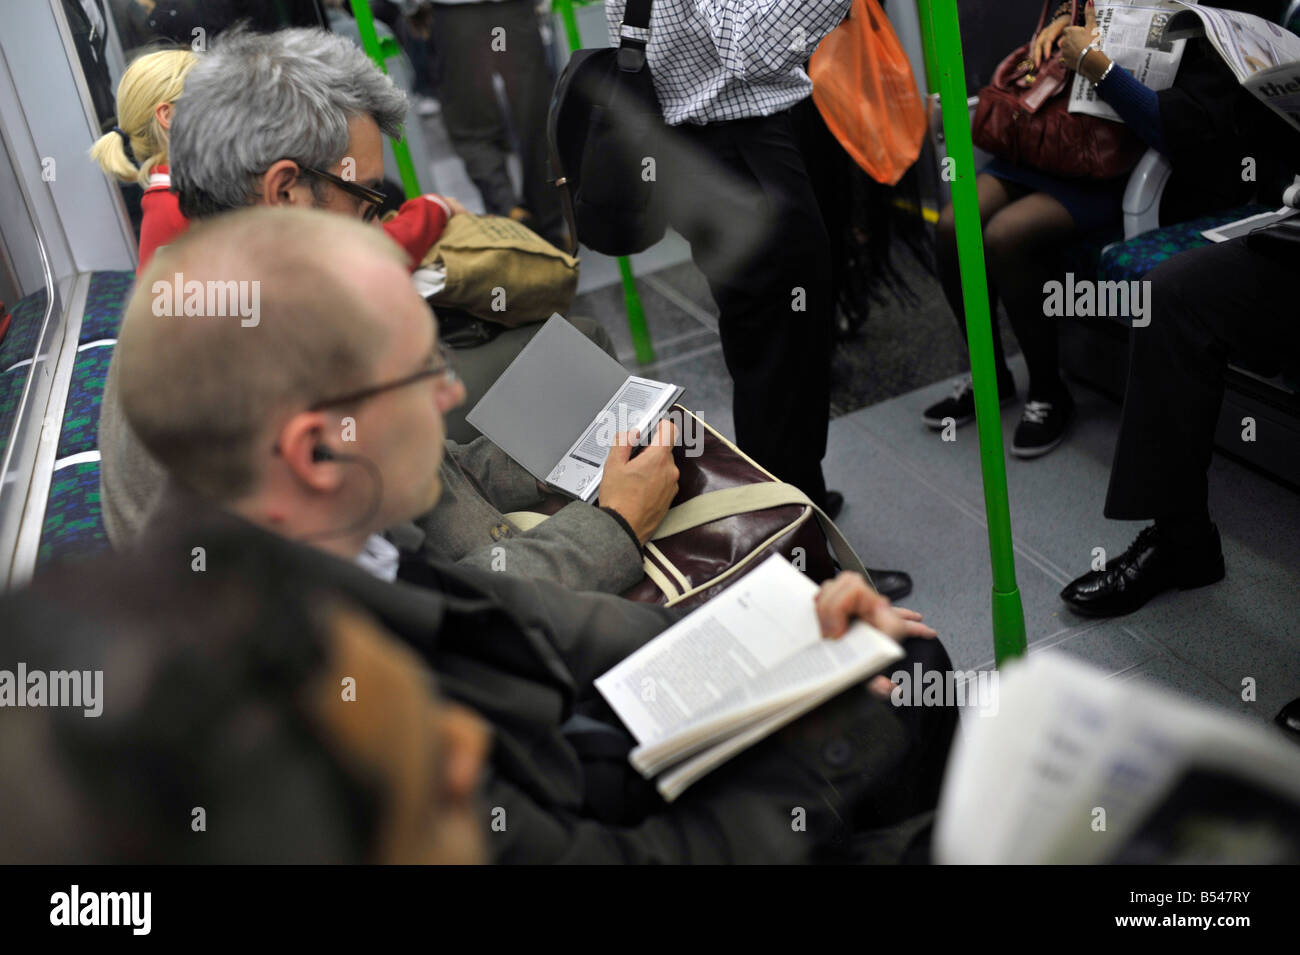 Read e book London britain tube underground,ebook - Stock Image